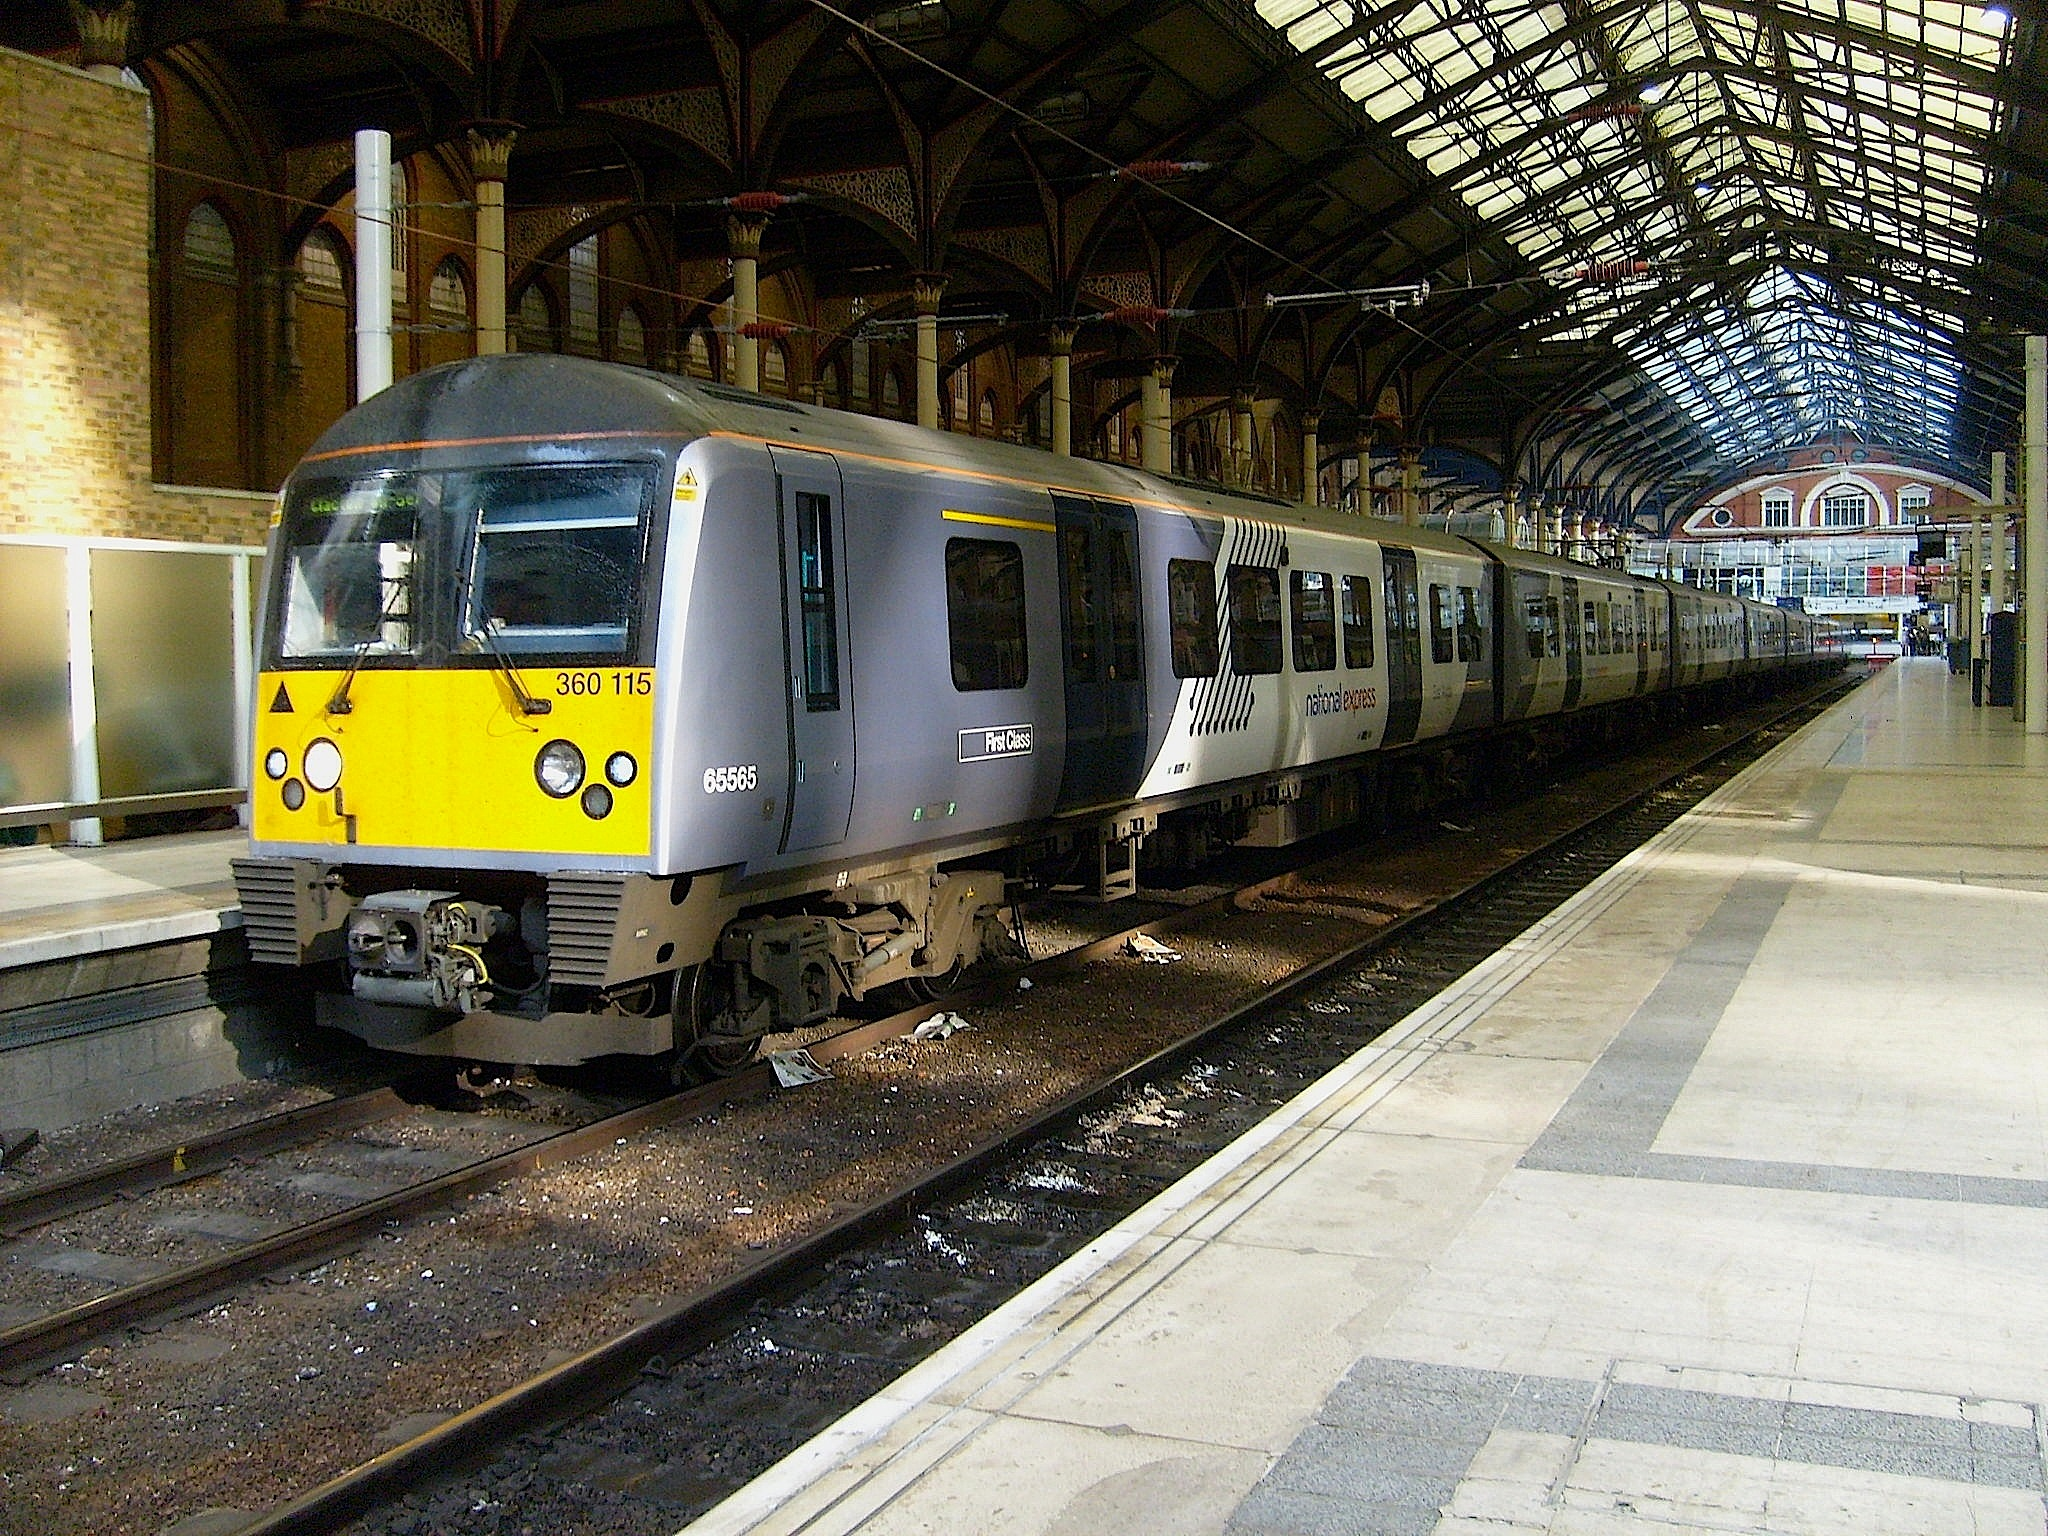 File:360115 A London Liverpool Street.JPG - Wikipedia, the free ...